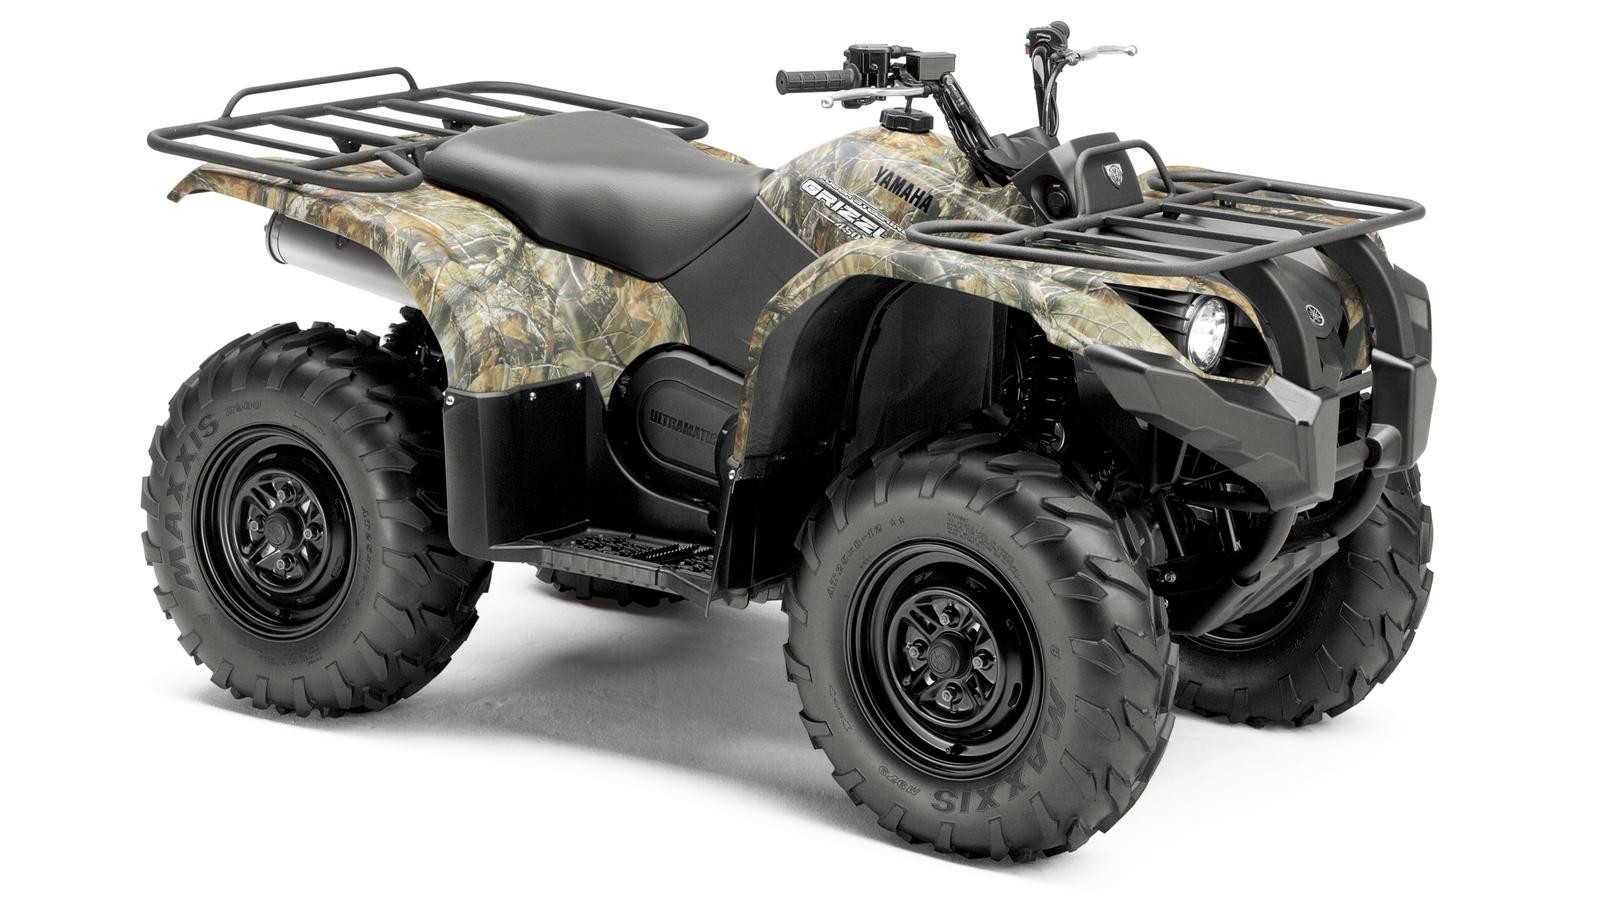 YAMAHA Grizzly 450  2011 photo 7